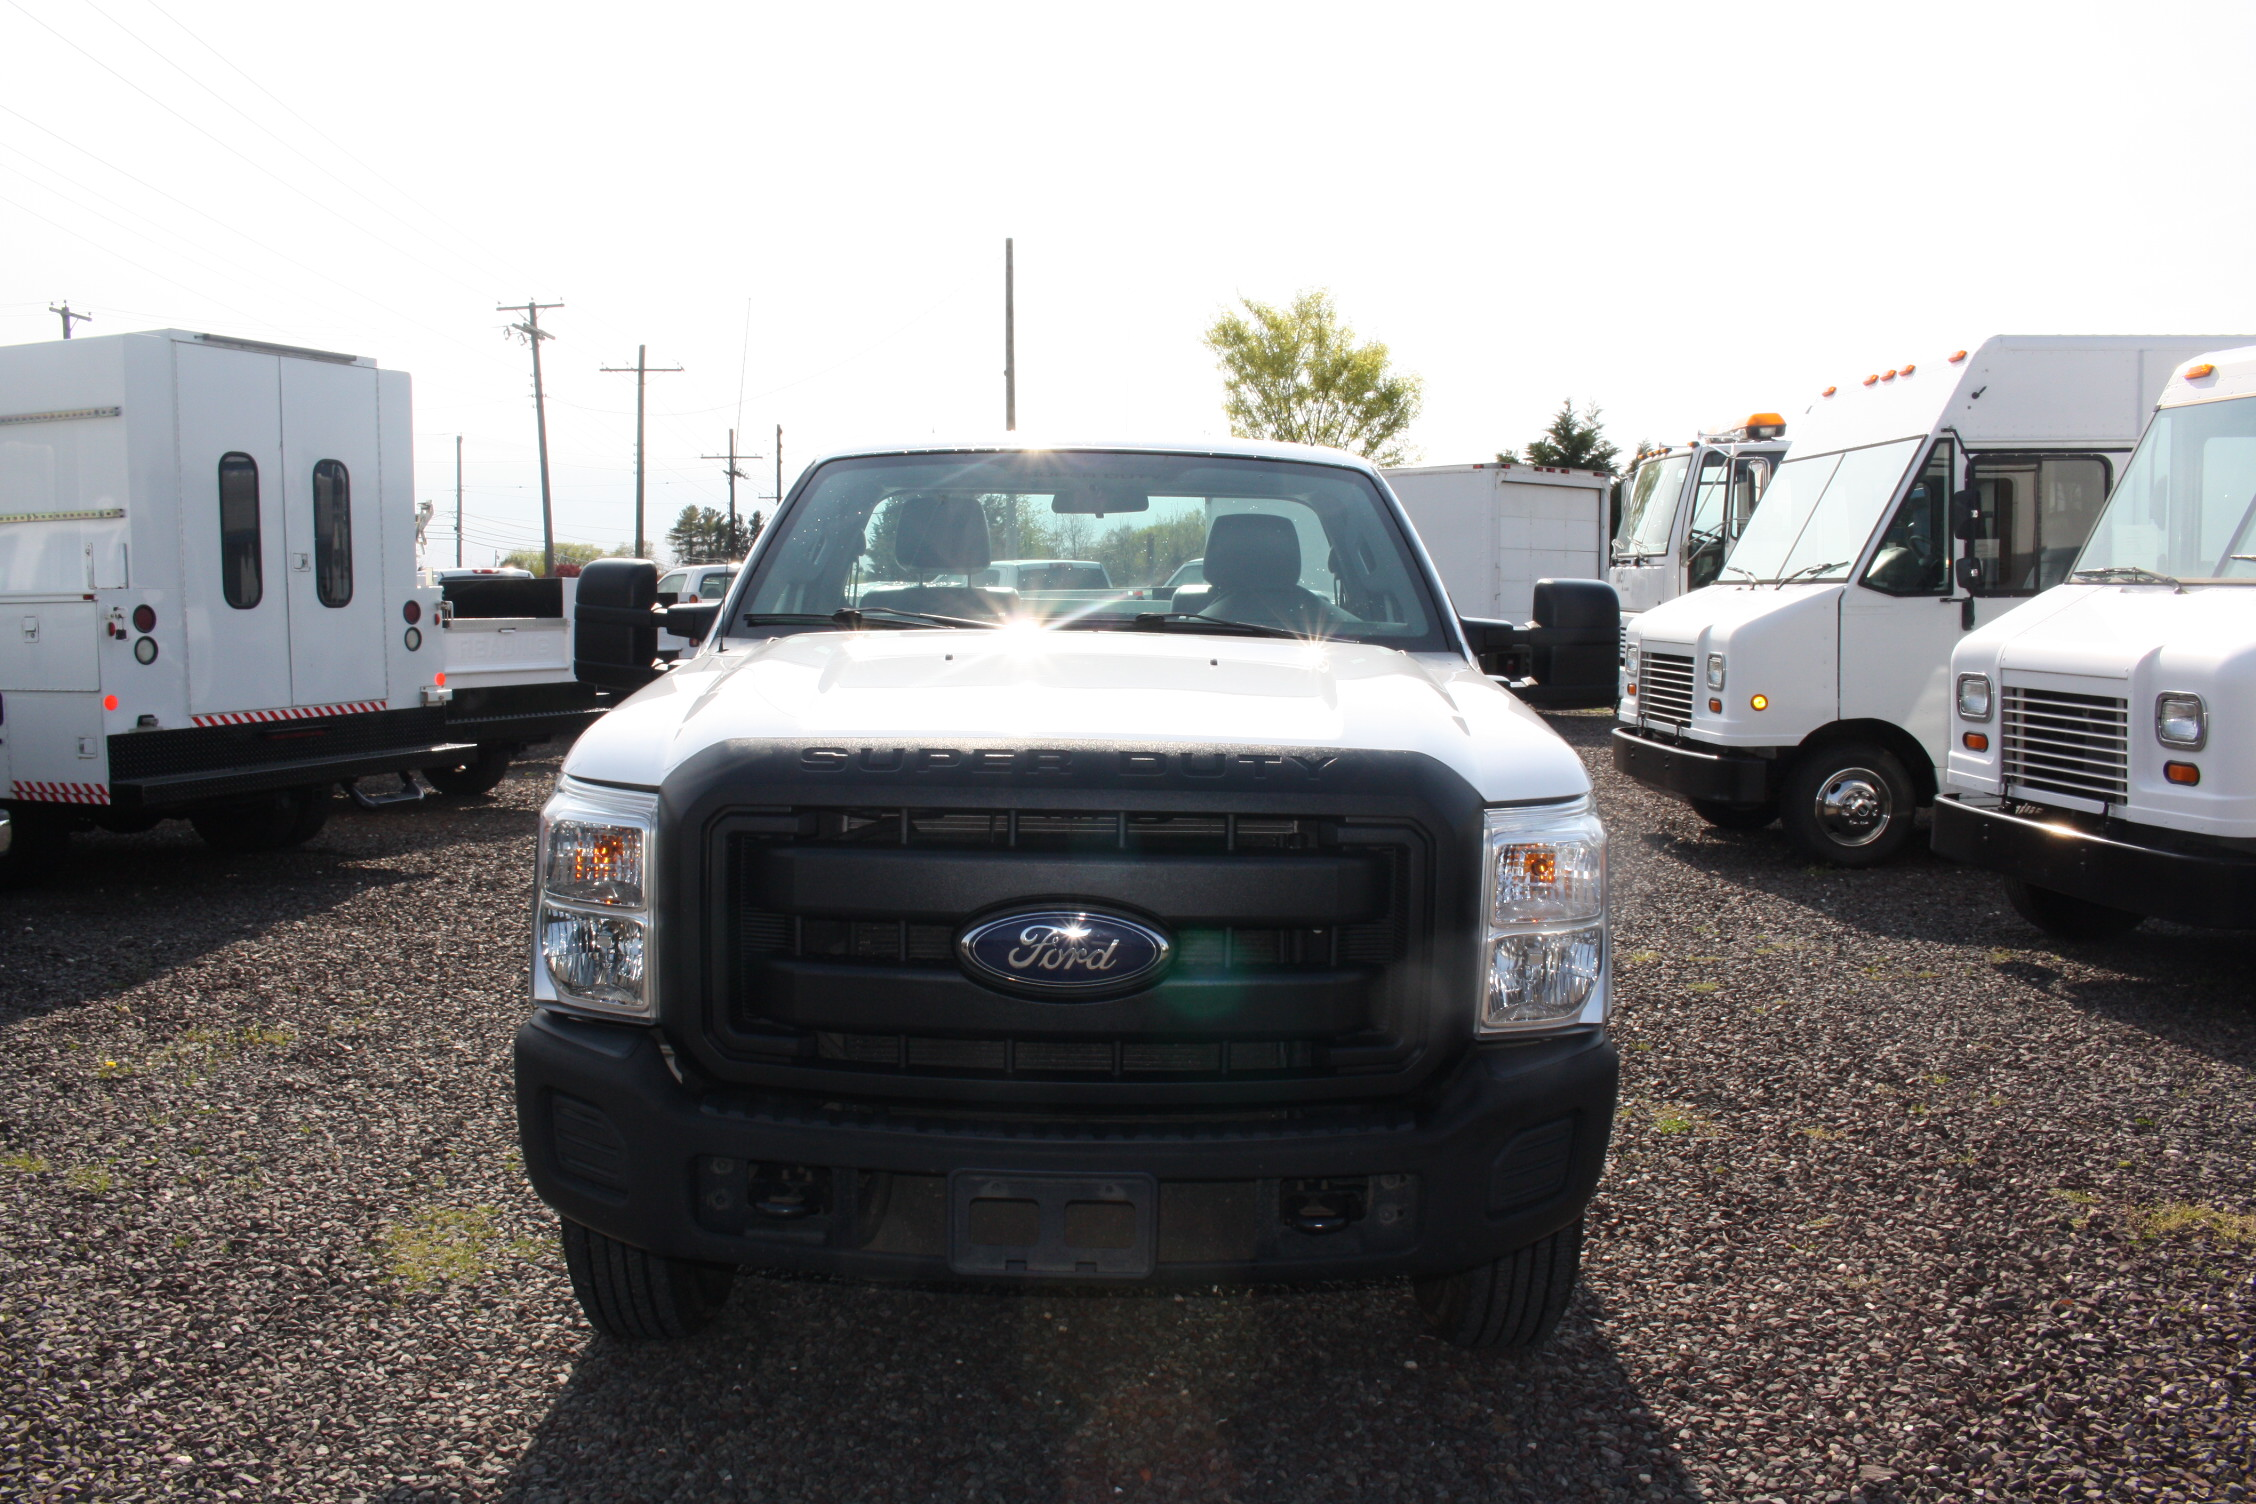 IMG 3579 - 2015 FORD F250 OPEN UTILITY TRUCK